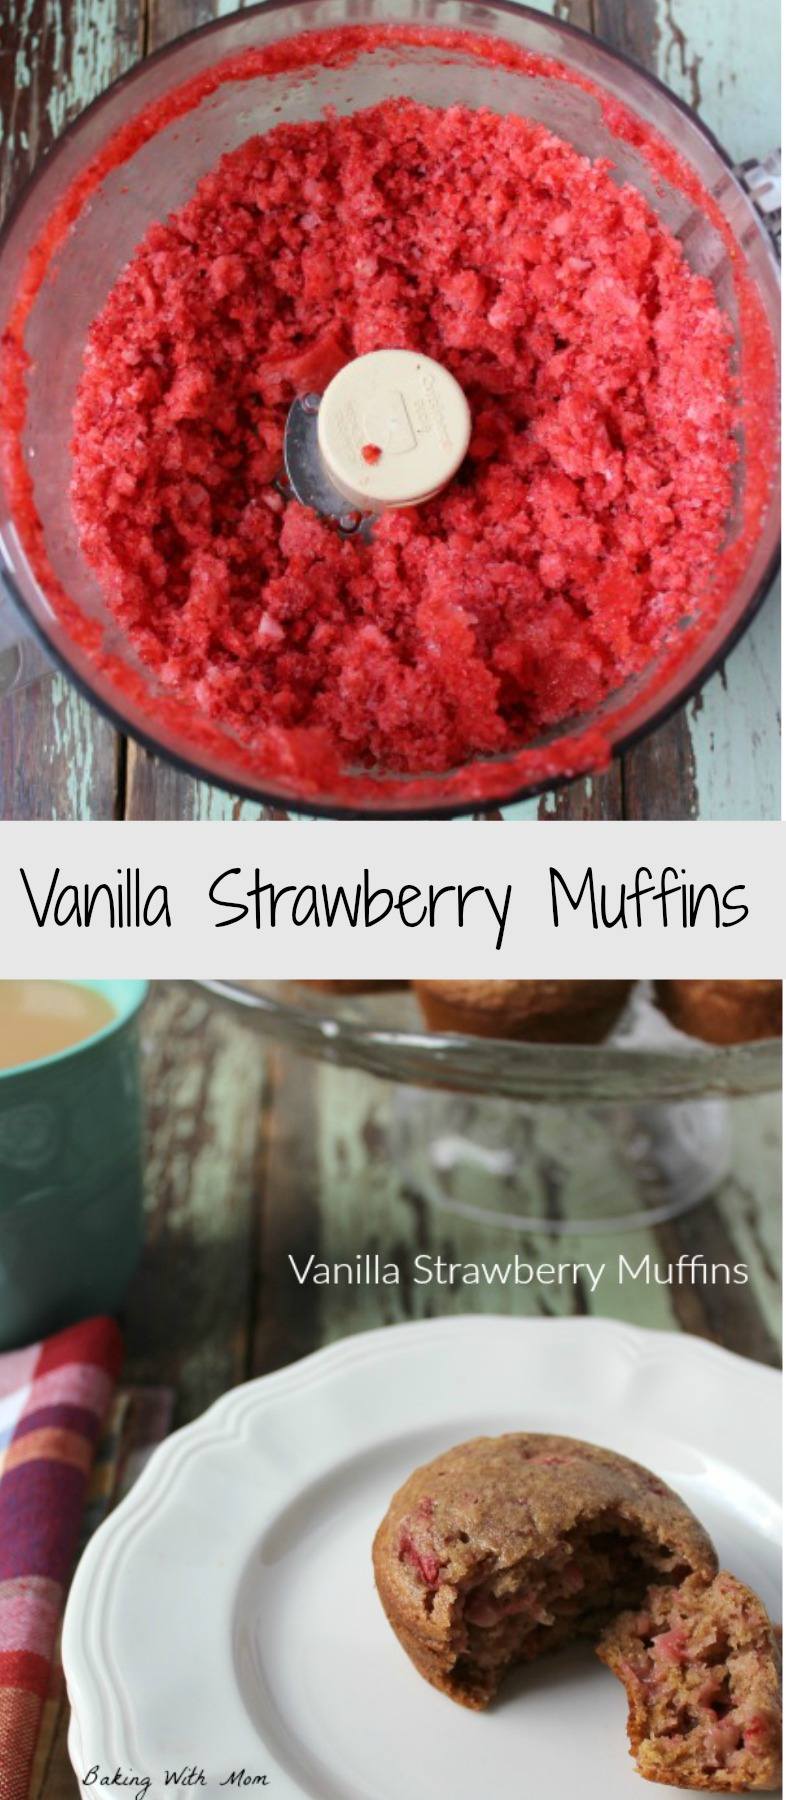 Vanilla Strawberry Muffins #ad #IDSimplyPure moist muffins with a lot of flavor